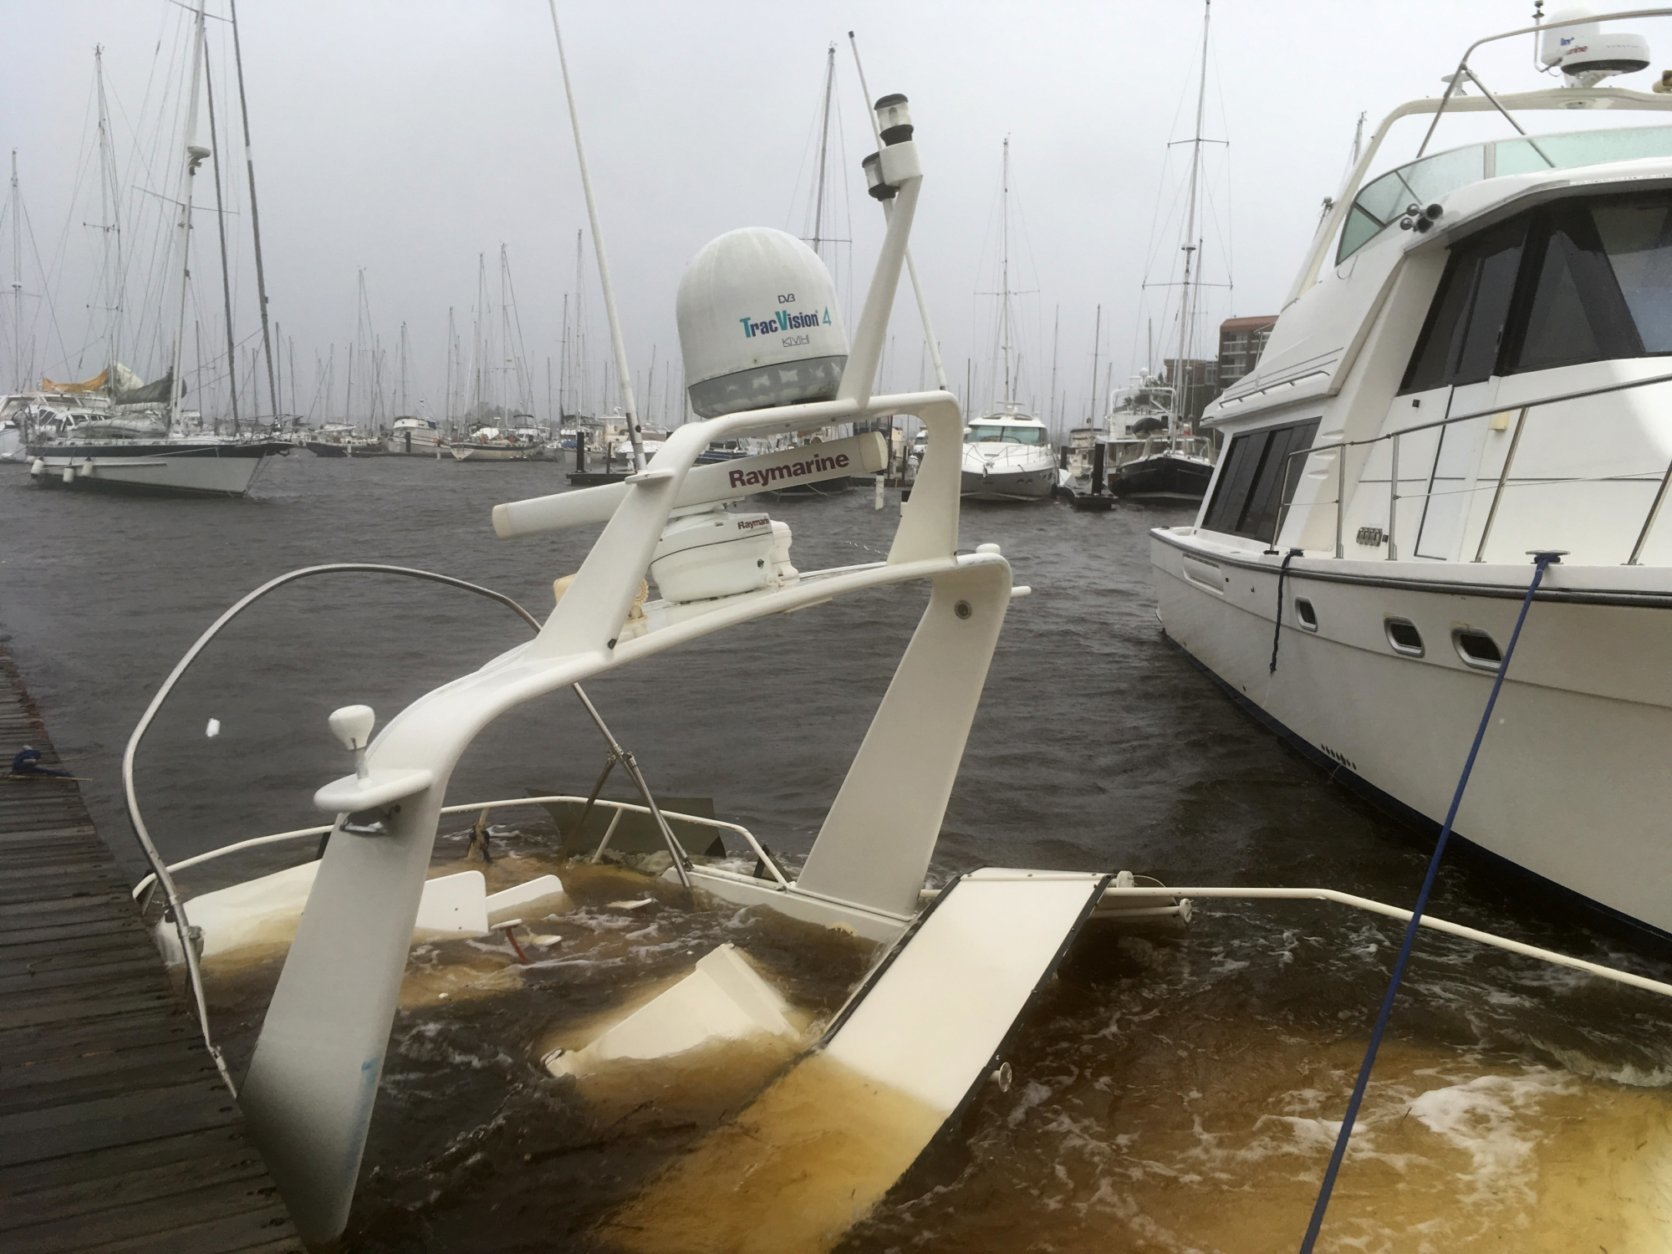 The mast of a sunken boat sits at a dock at the Grand View Marina in New Bern, N.C., on Friday, Sept. 14, 2018. Winds and rains from Hurricane Florence caused the Neuse River to swell, swamping the coastal city. (AP Photo/Allen G. Breed)